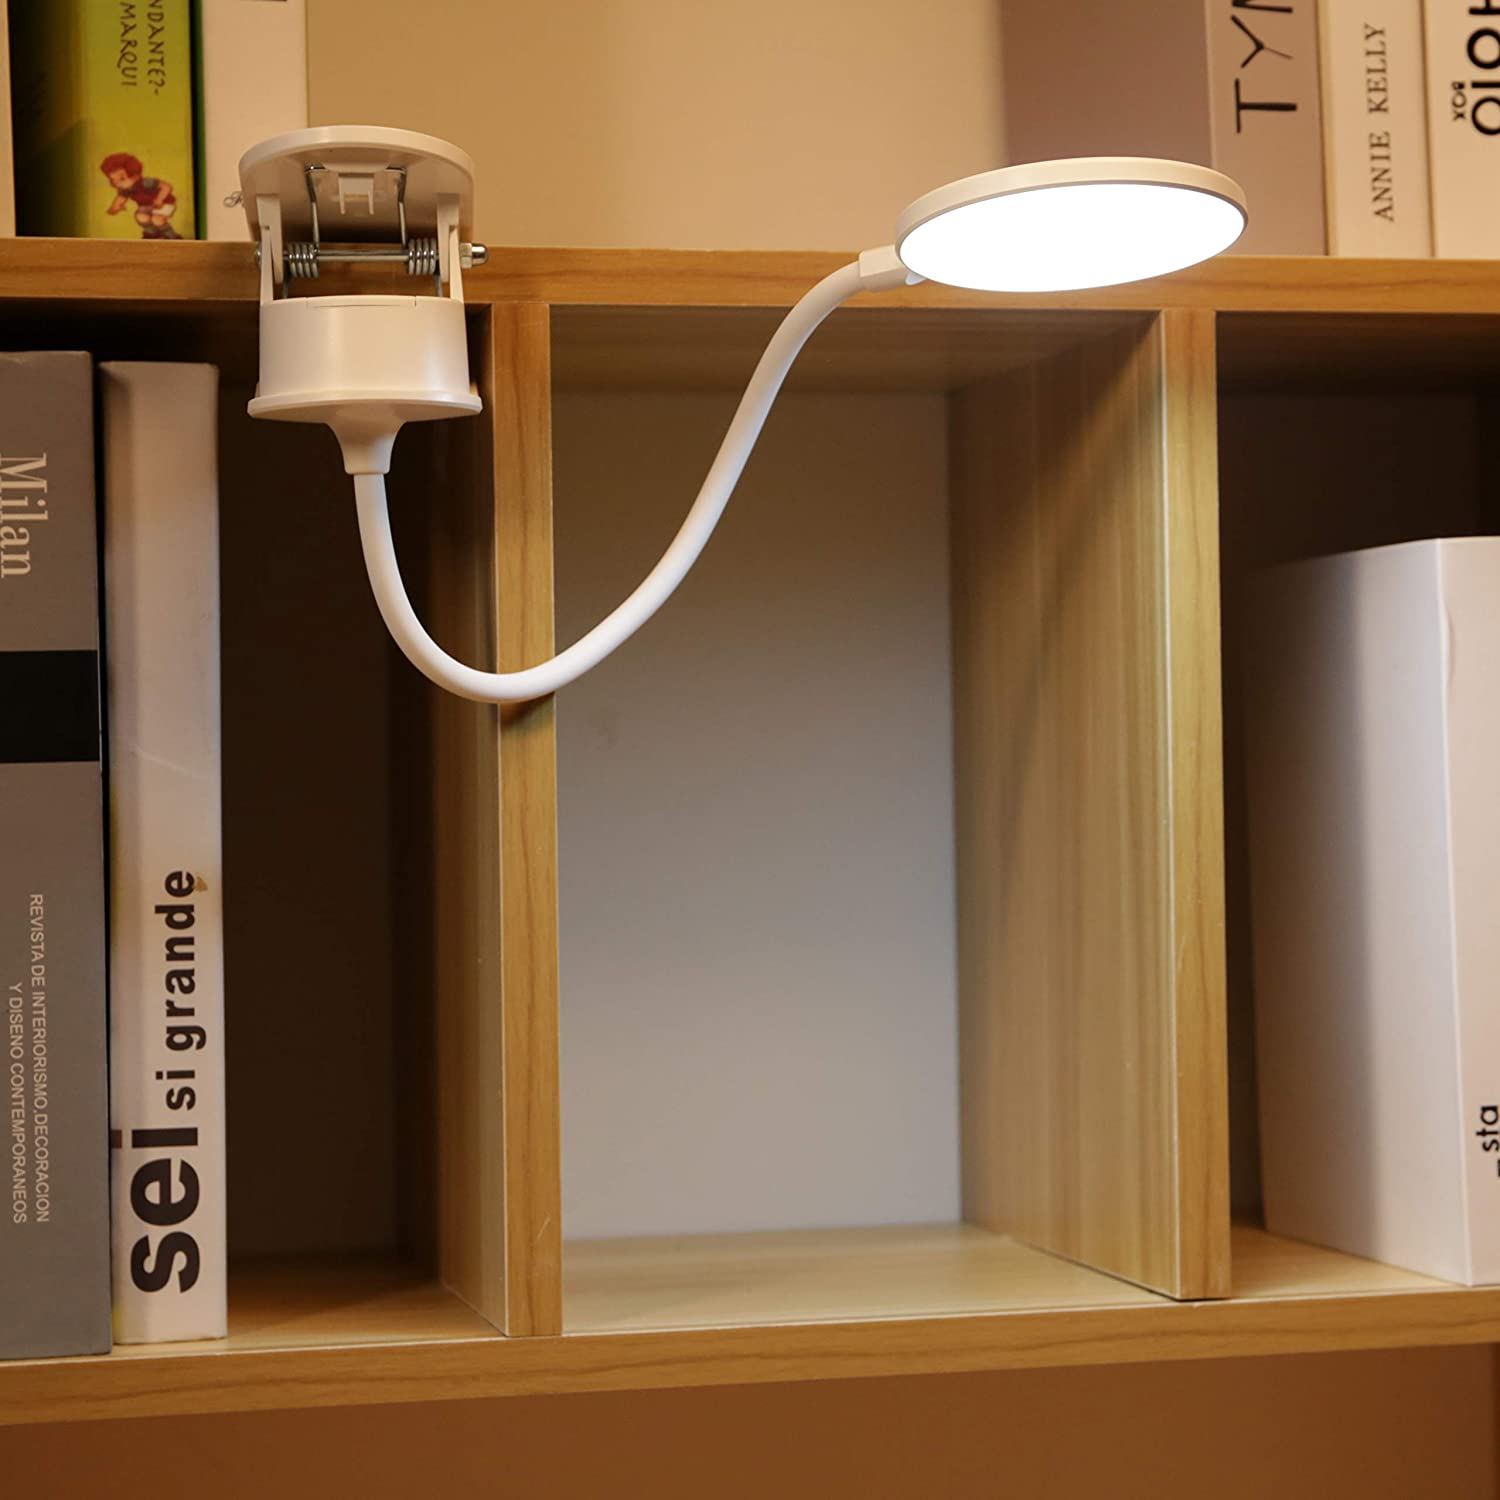 Max 59% OFF Miday Clip on Lamp Battery Light Reading New arrival fo Powered